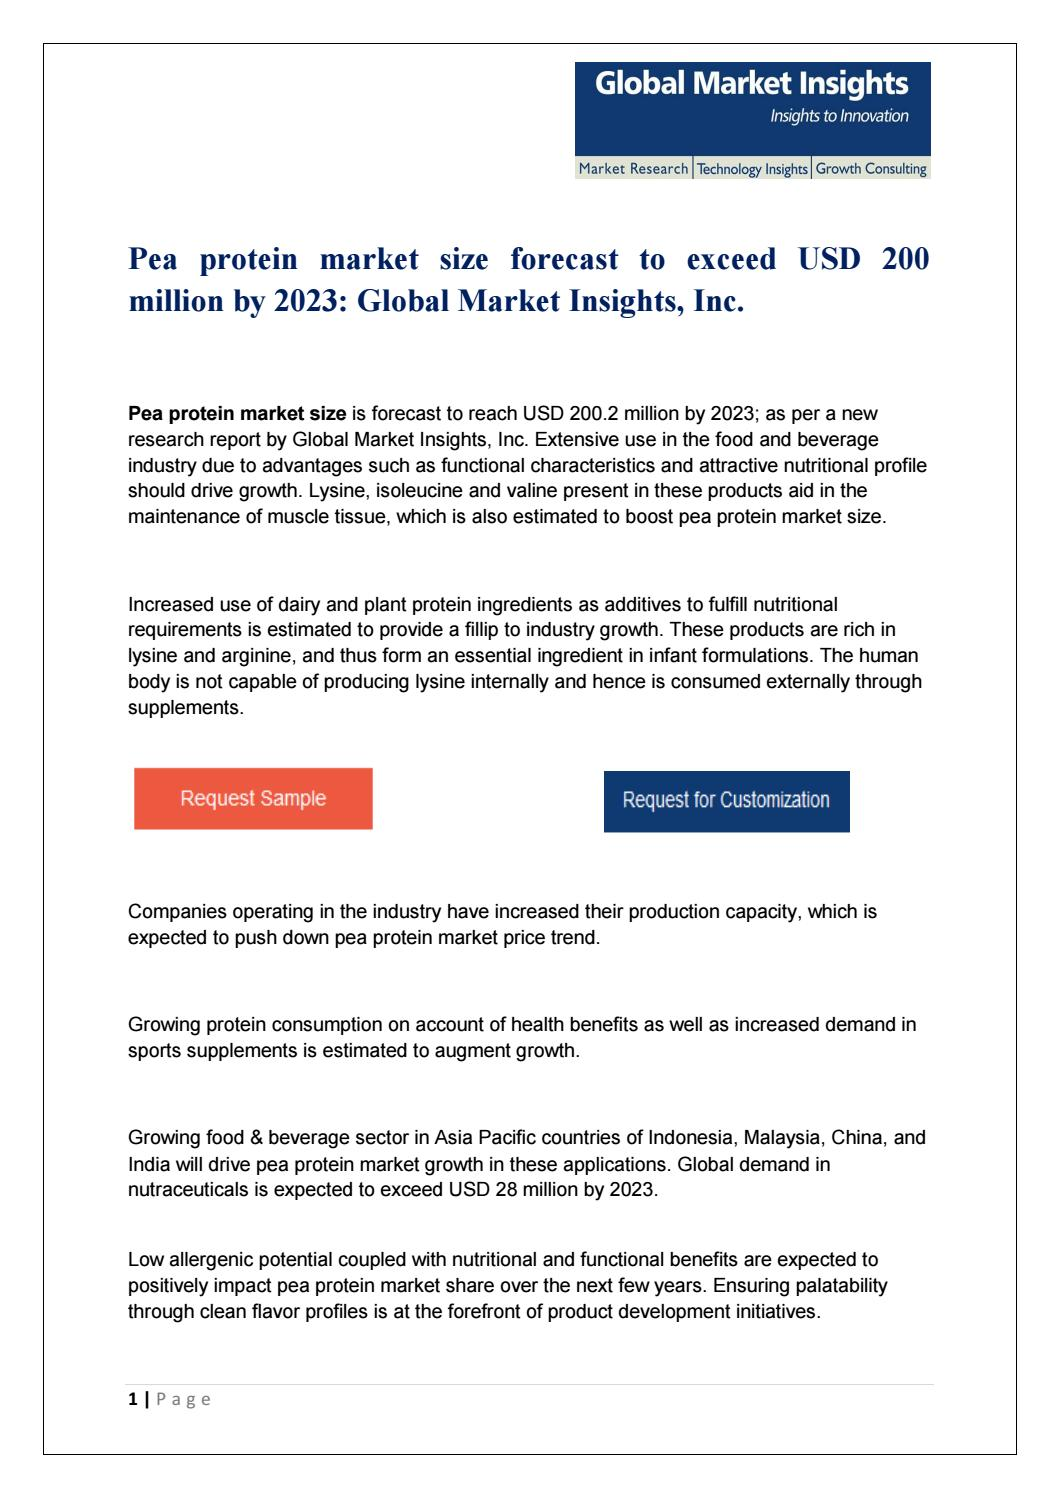 PDF for Pea Protein Market: Global Market Insights, Inc  by